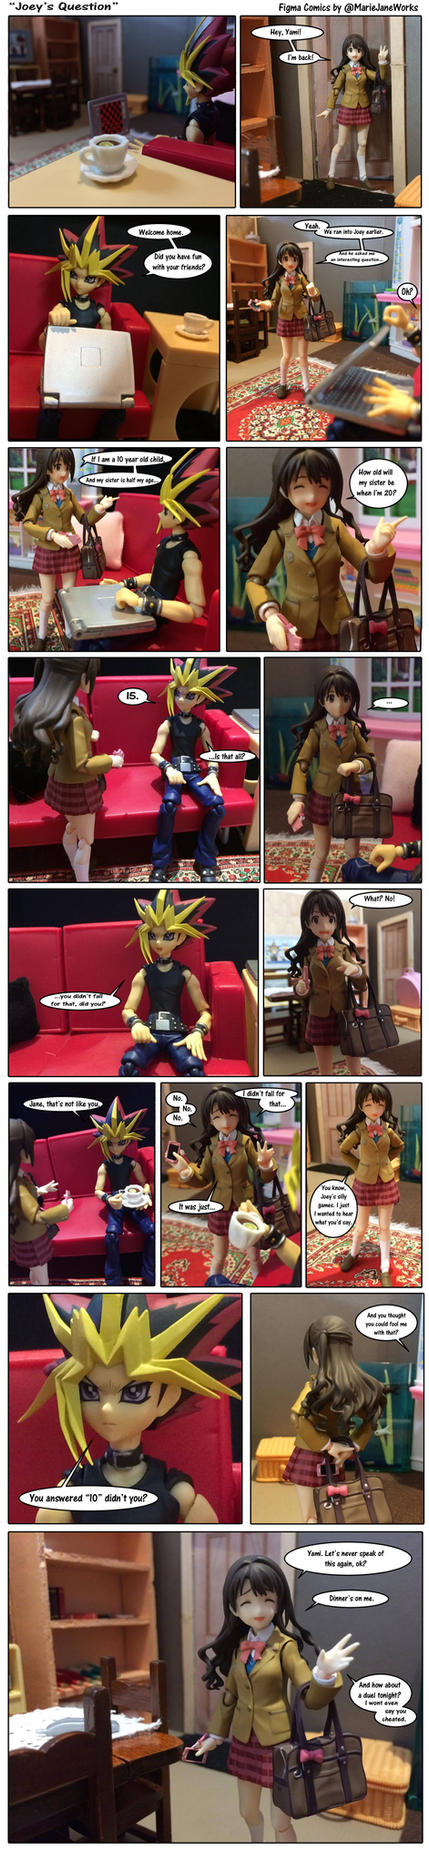 Joeys Question ~Figma Comics by MarieJaneWorks